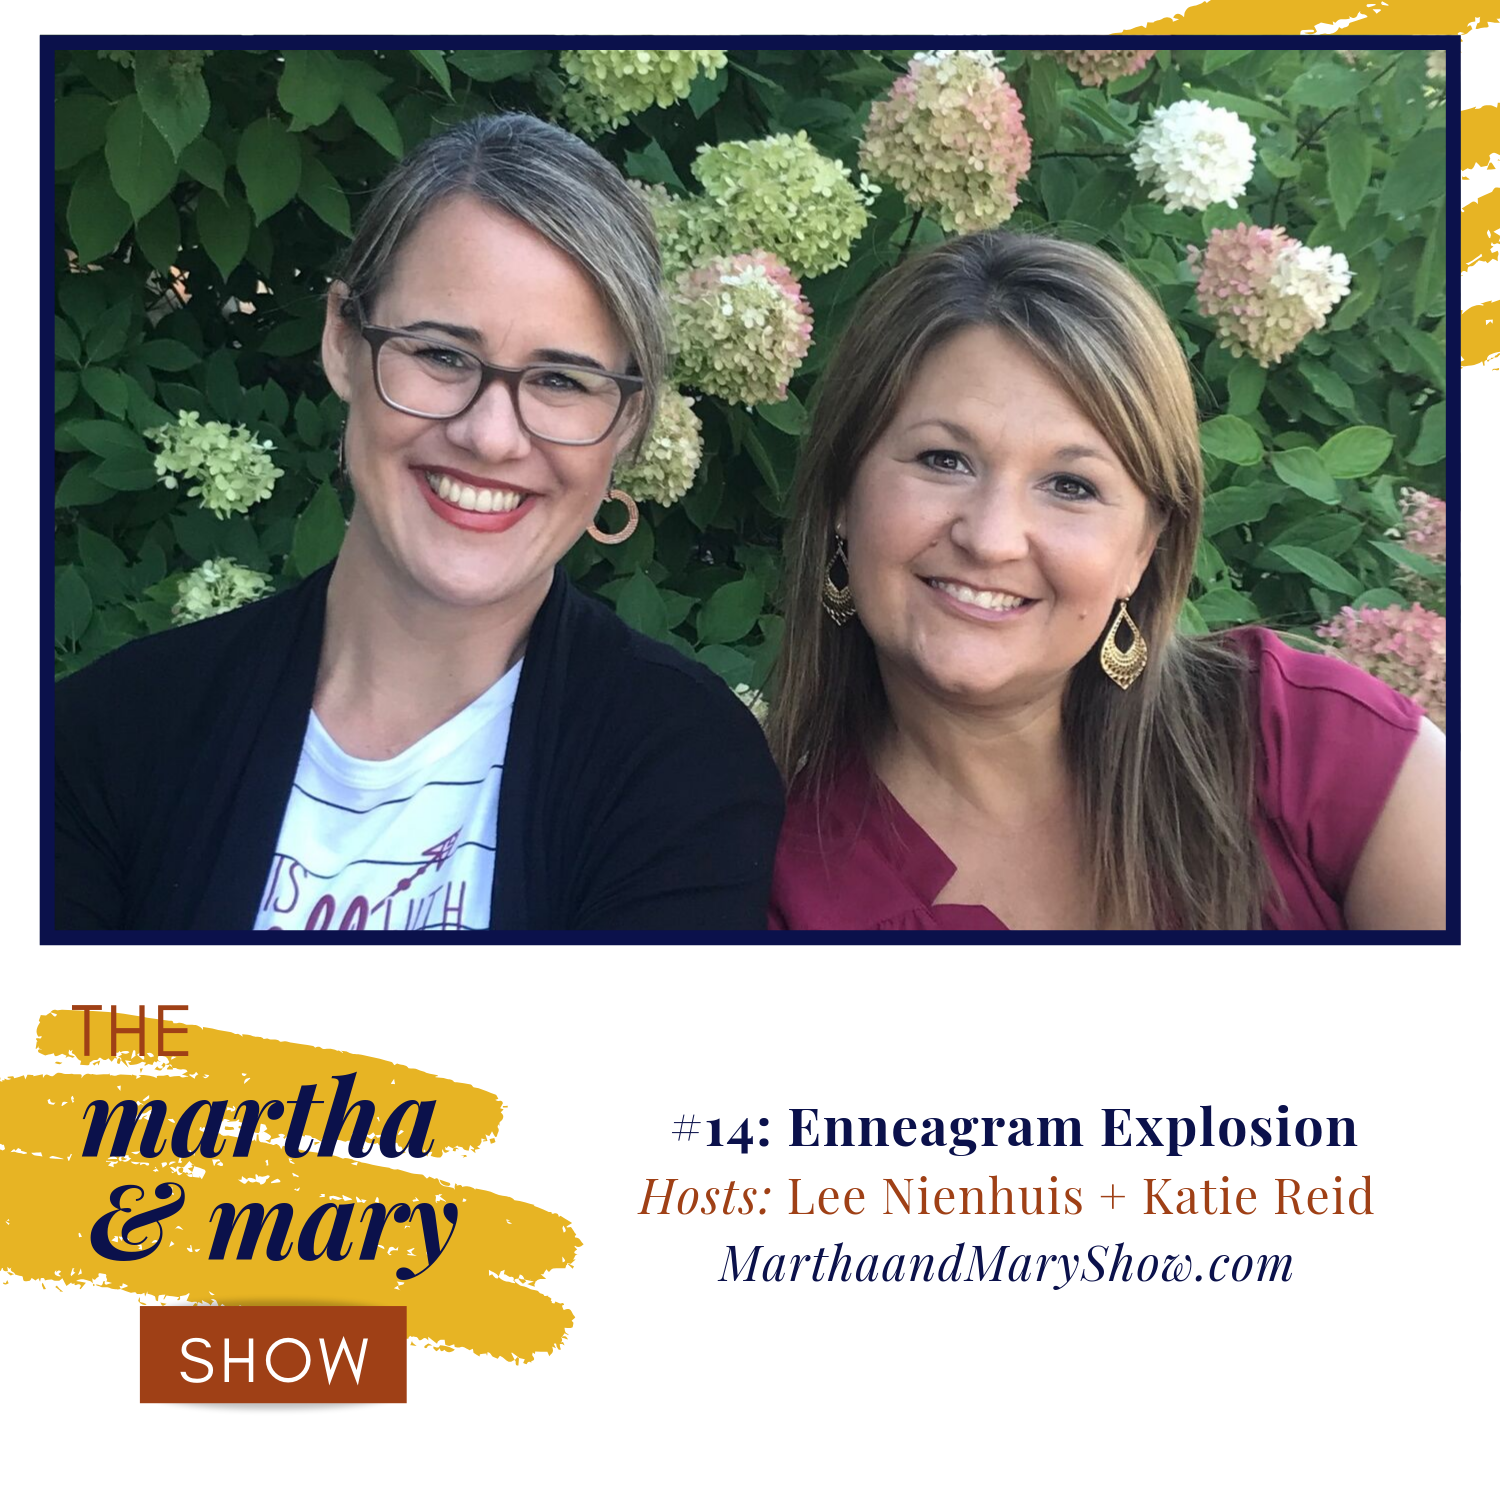 Enneagram Explosion Episode 14 of Martha Mary Show with Katie Reid and Lee Nienhuis